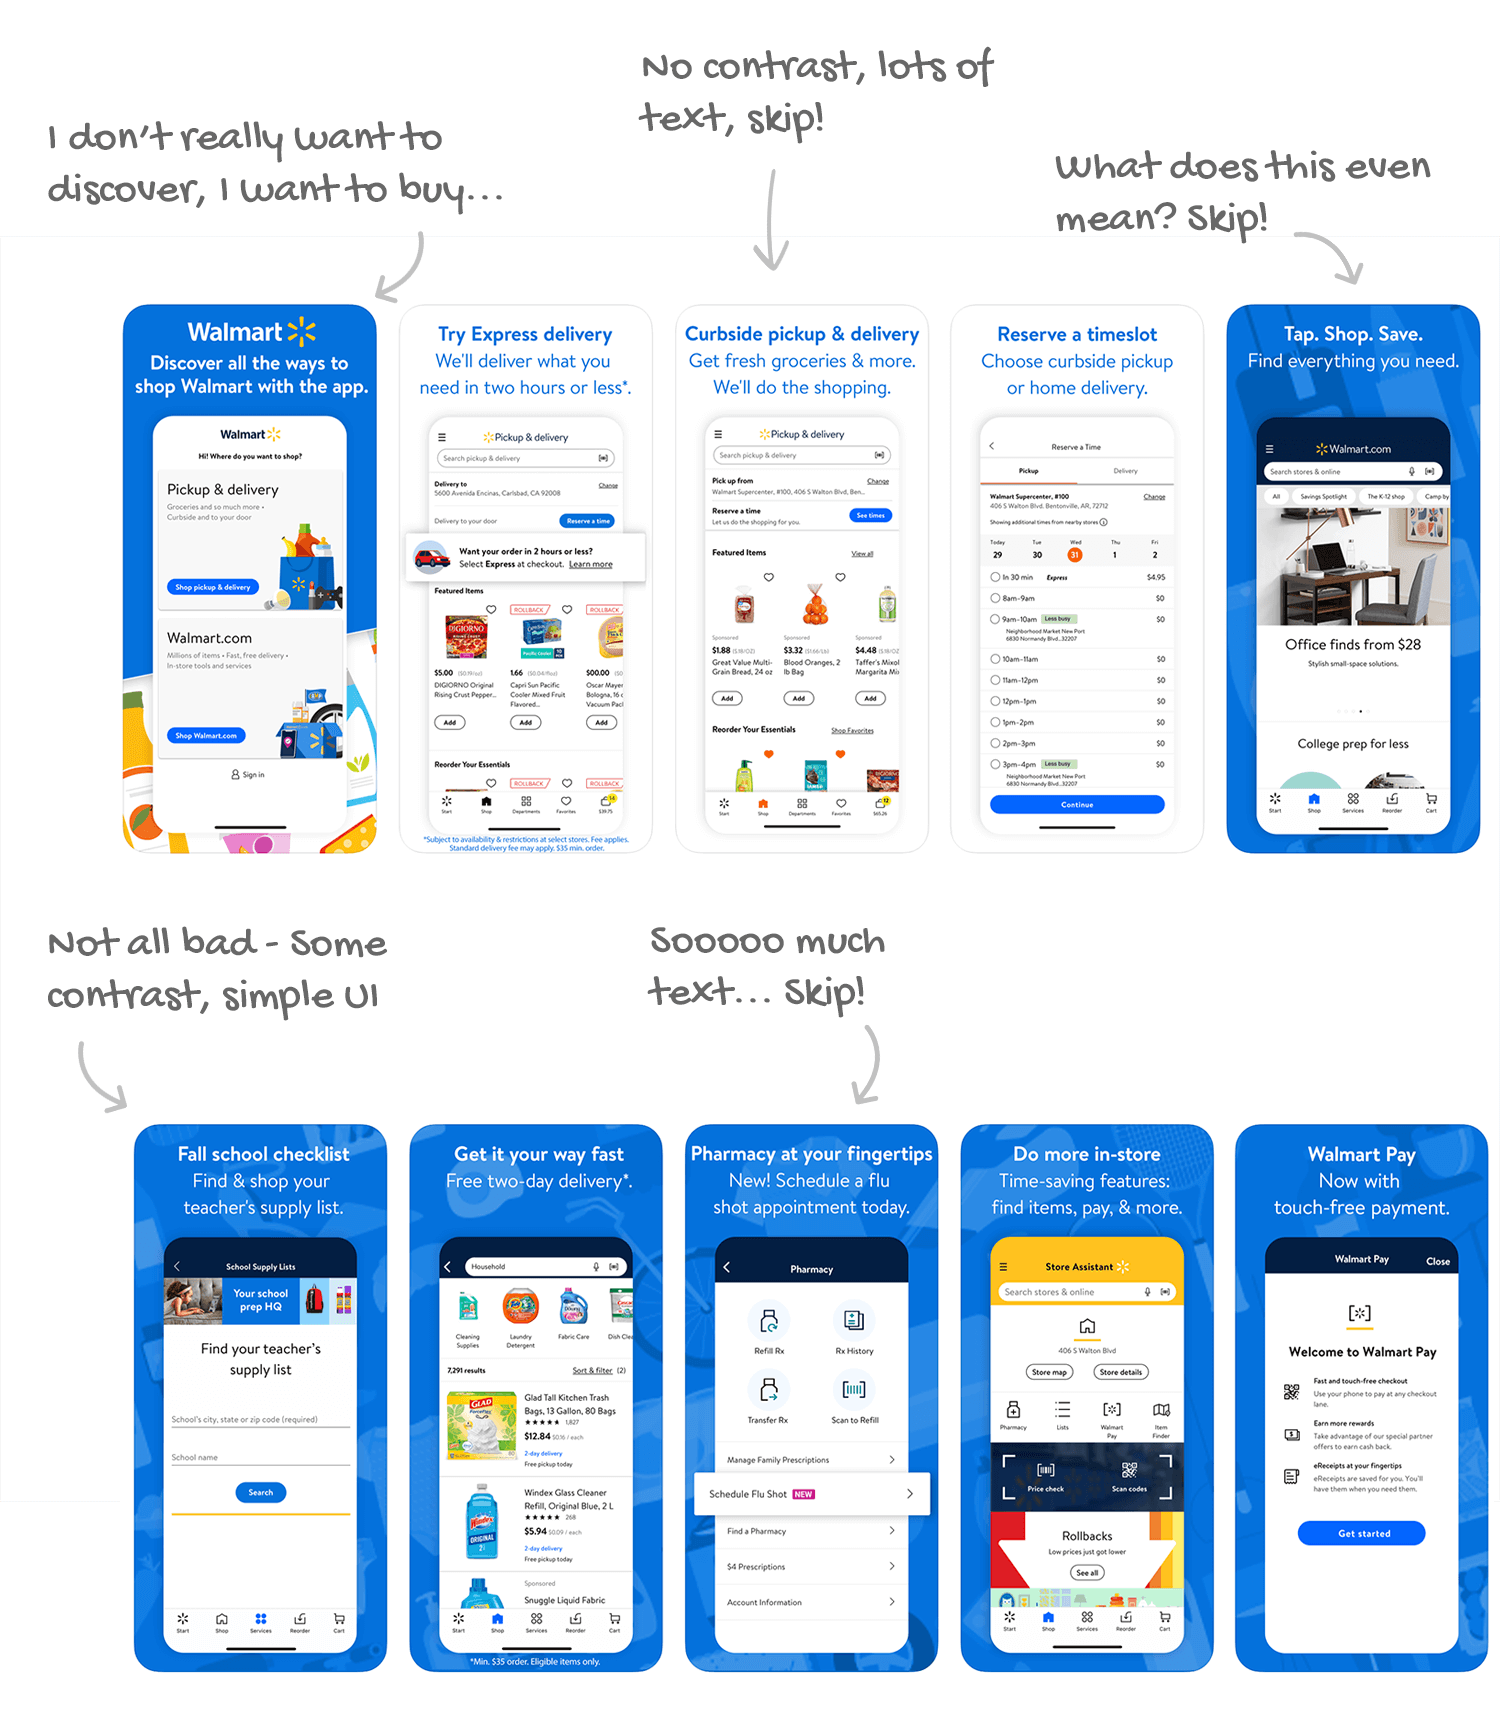 Walmart for iOS Screenshot Analysis by Appfigures